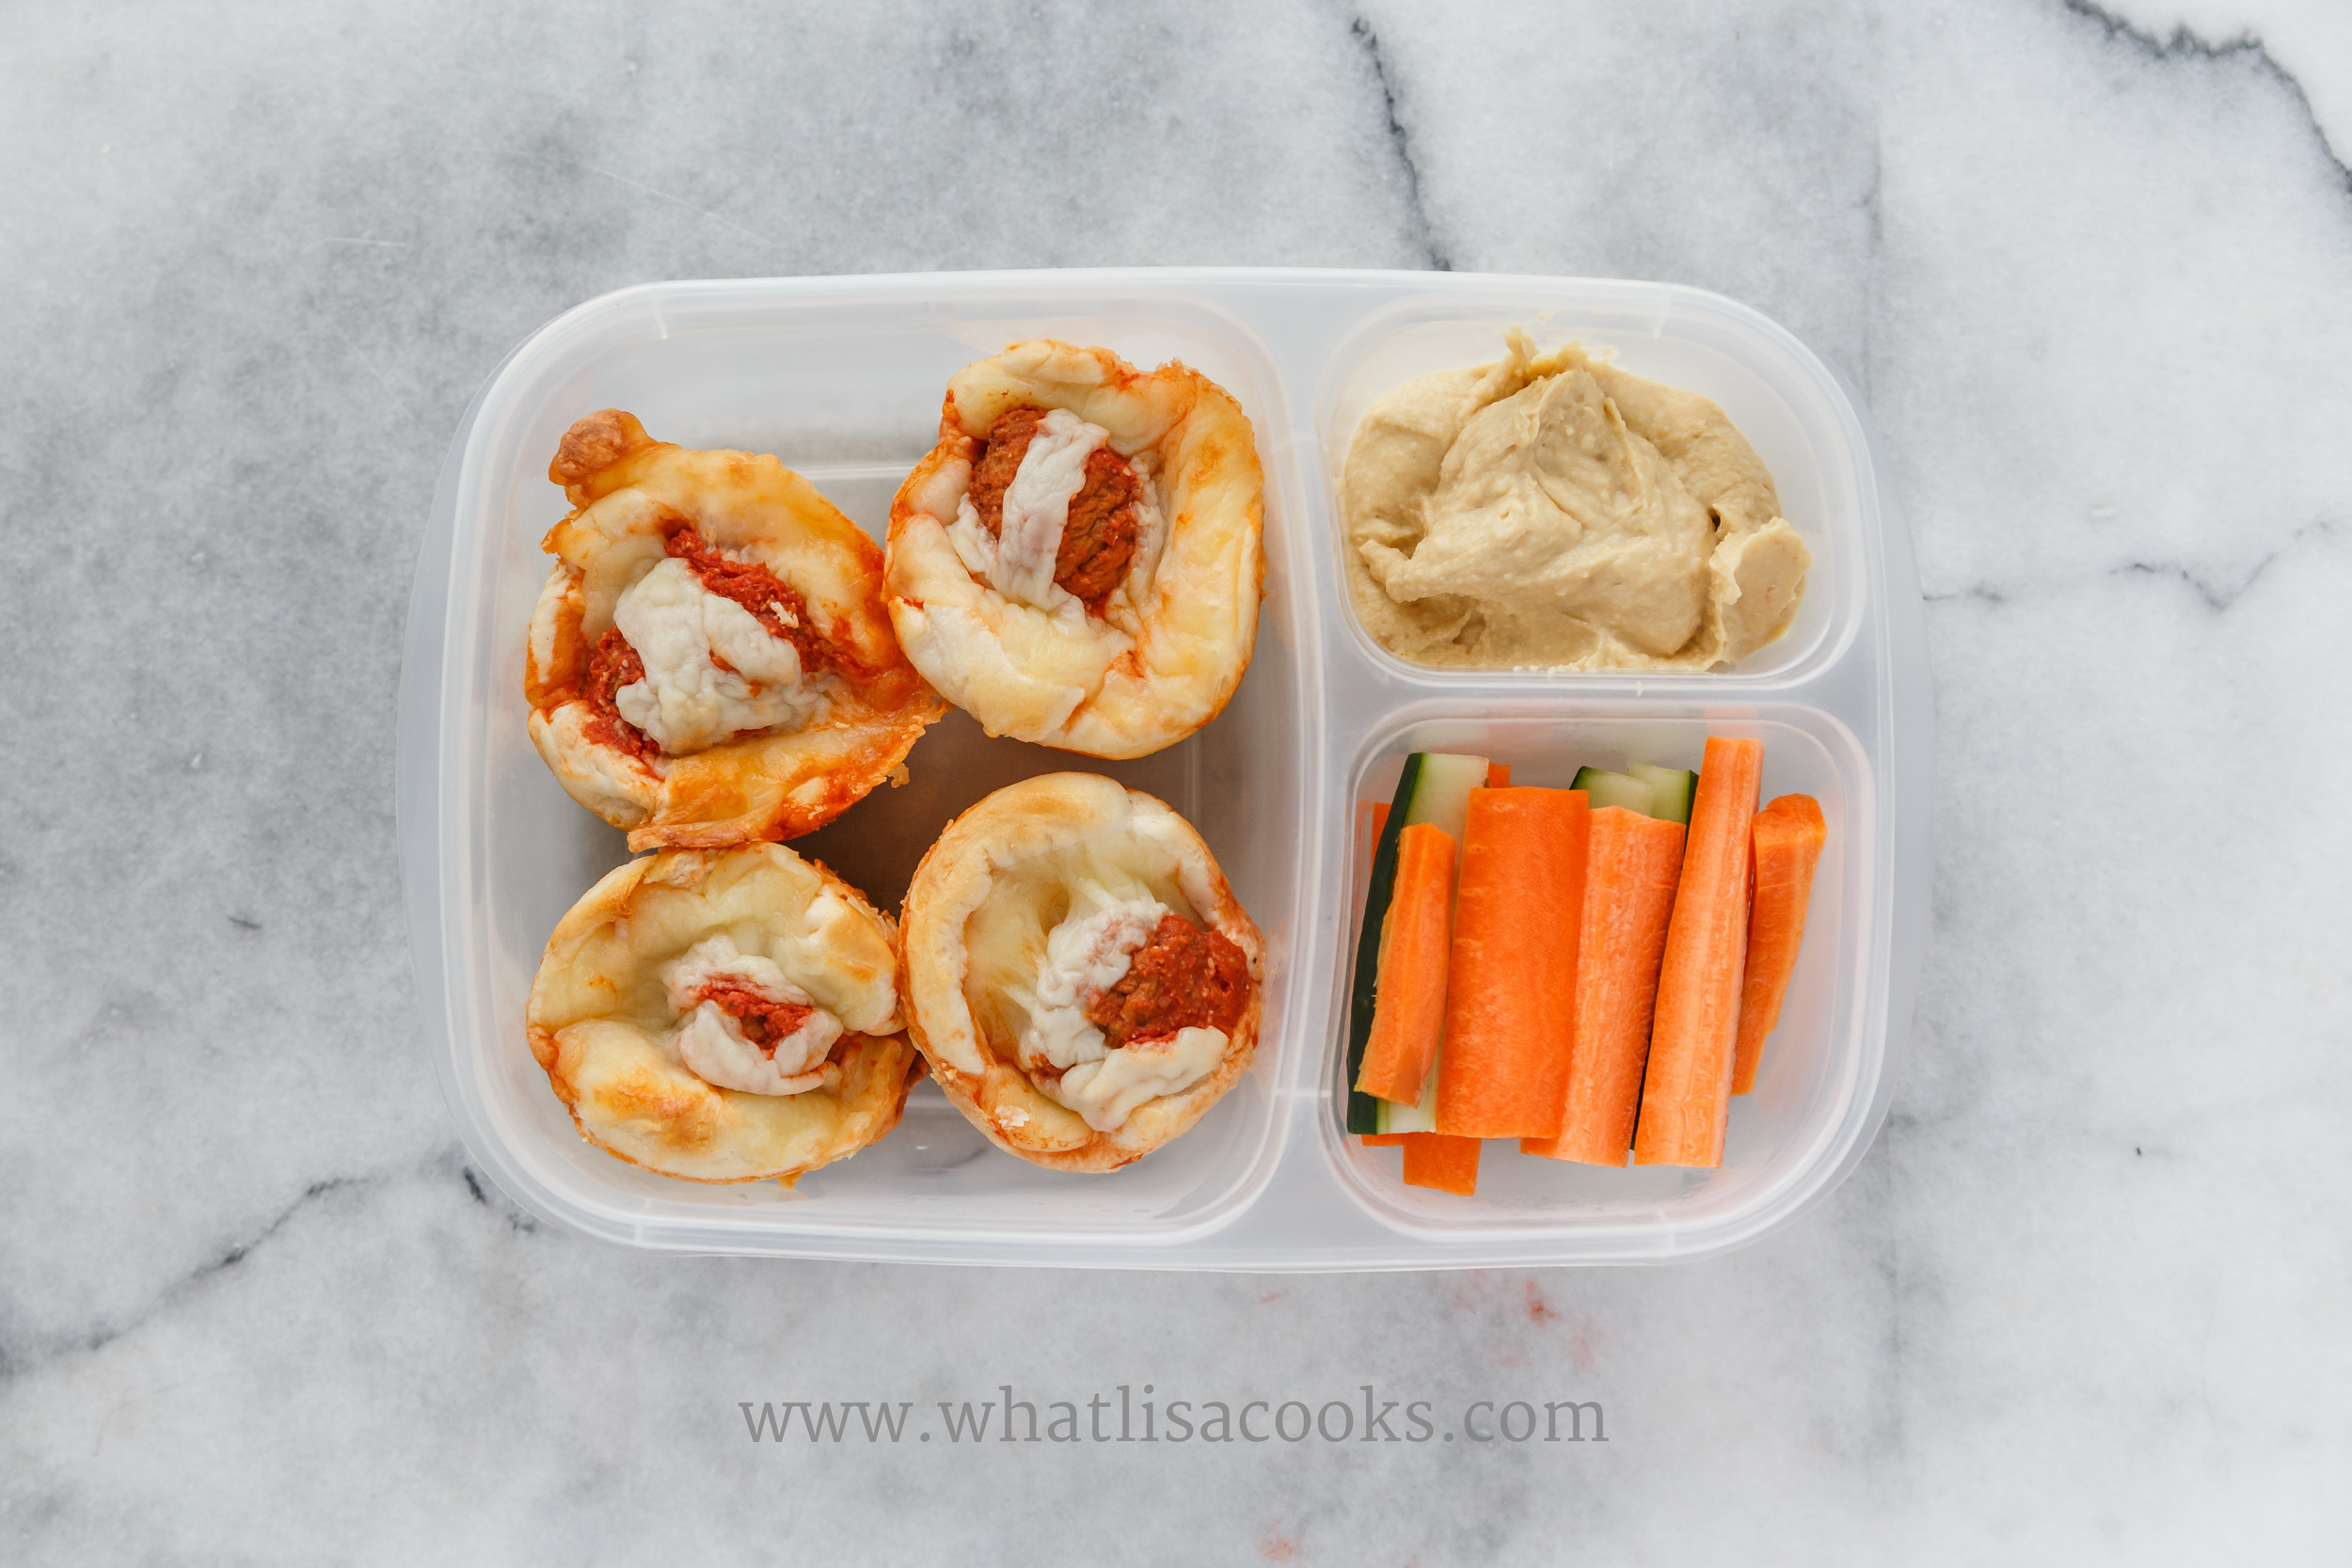 "Grown ups like 'kid food' too.  A work lunch for my husband: meatball muffins, carrots, cucumbers, hummus for dipping.  His lunches are packed in an  ""Urban"" Easy Lunchbox  (same as the kids boxes, but with more grown up colors)."